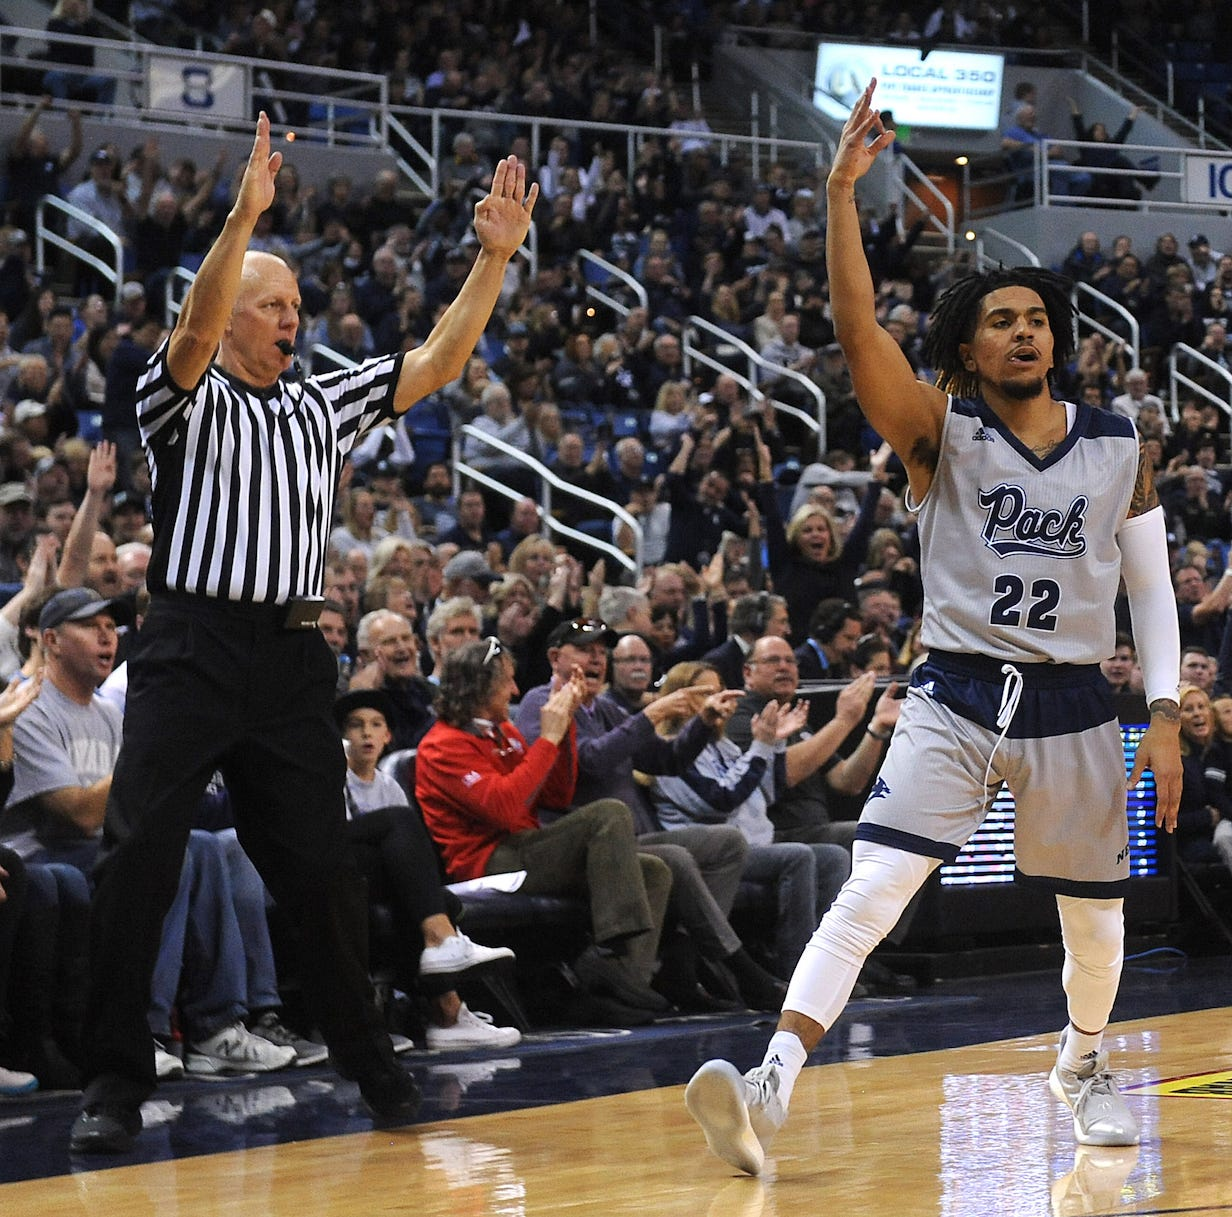 Wolf Pack guard Jazz Johnson will return to Nevada for his senior season